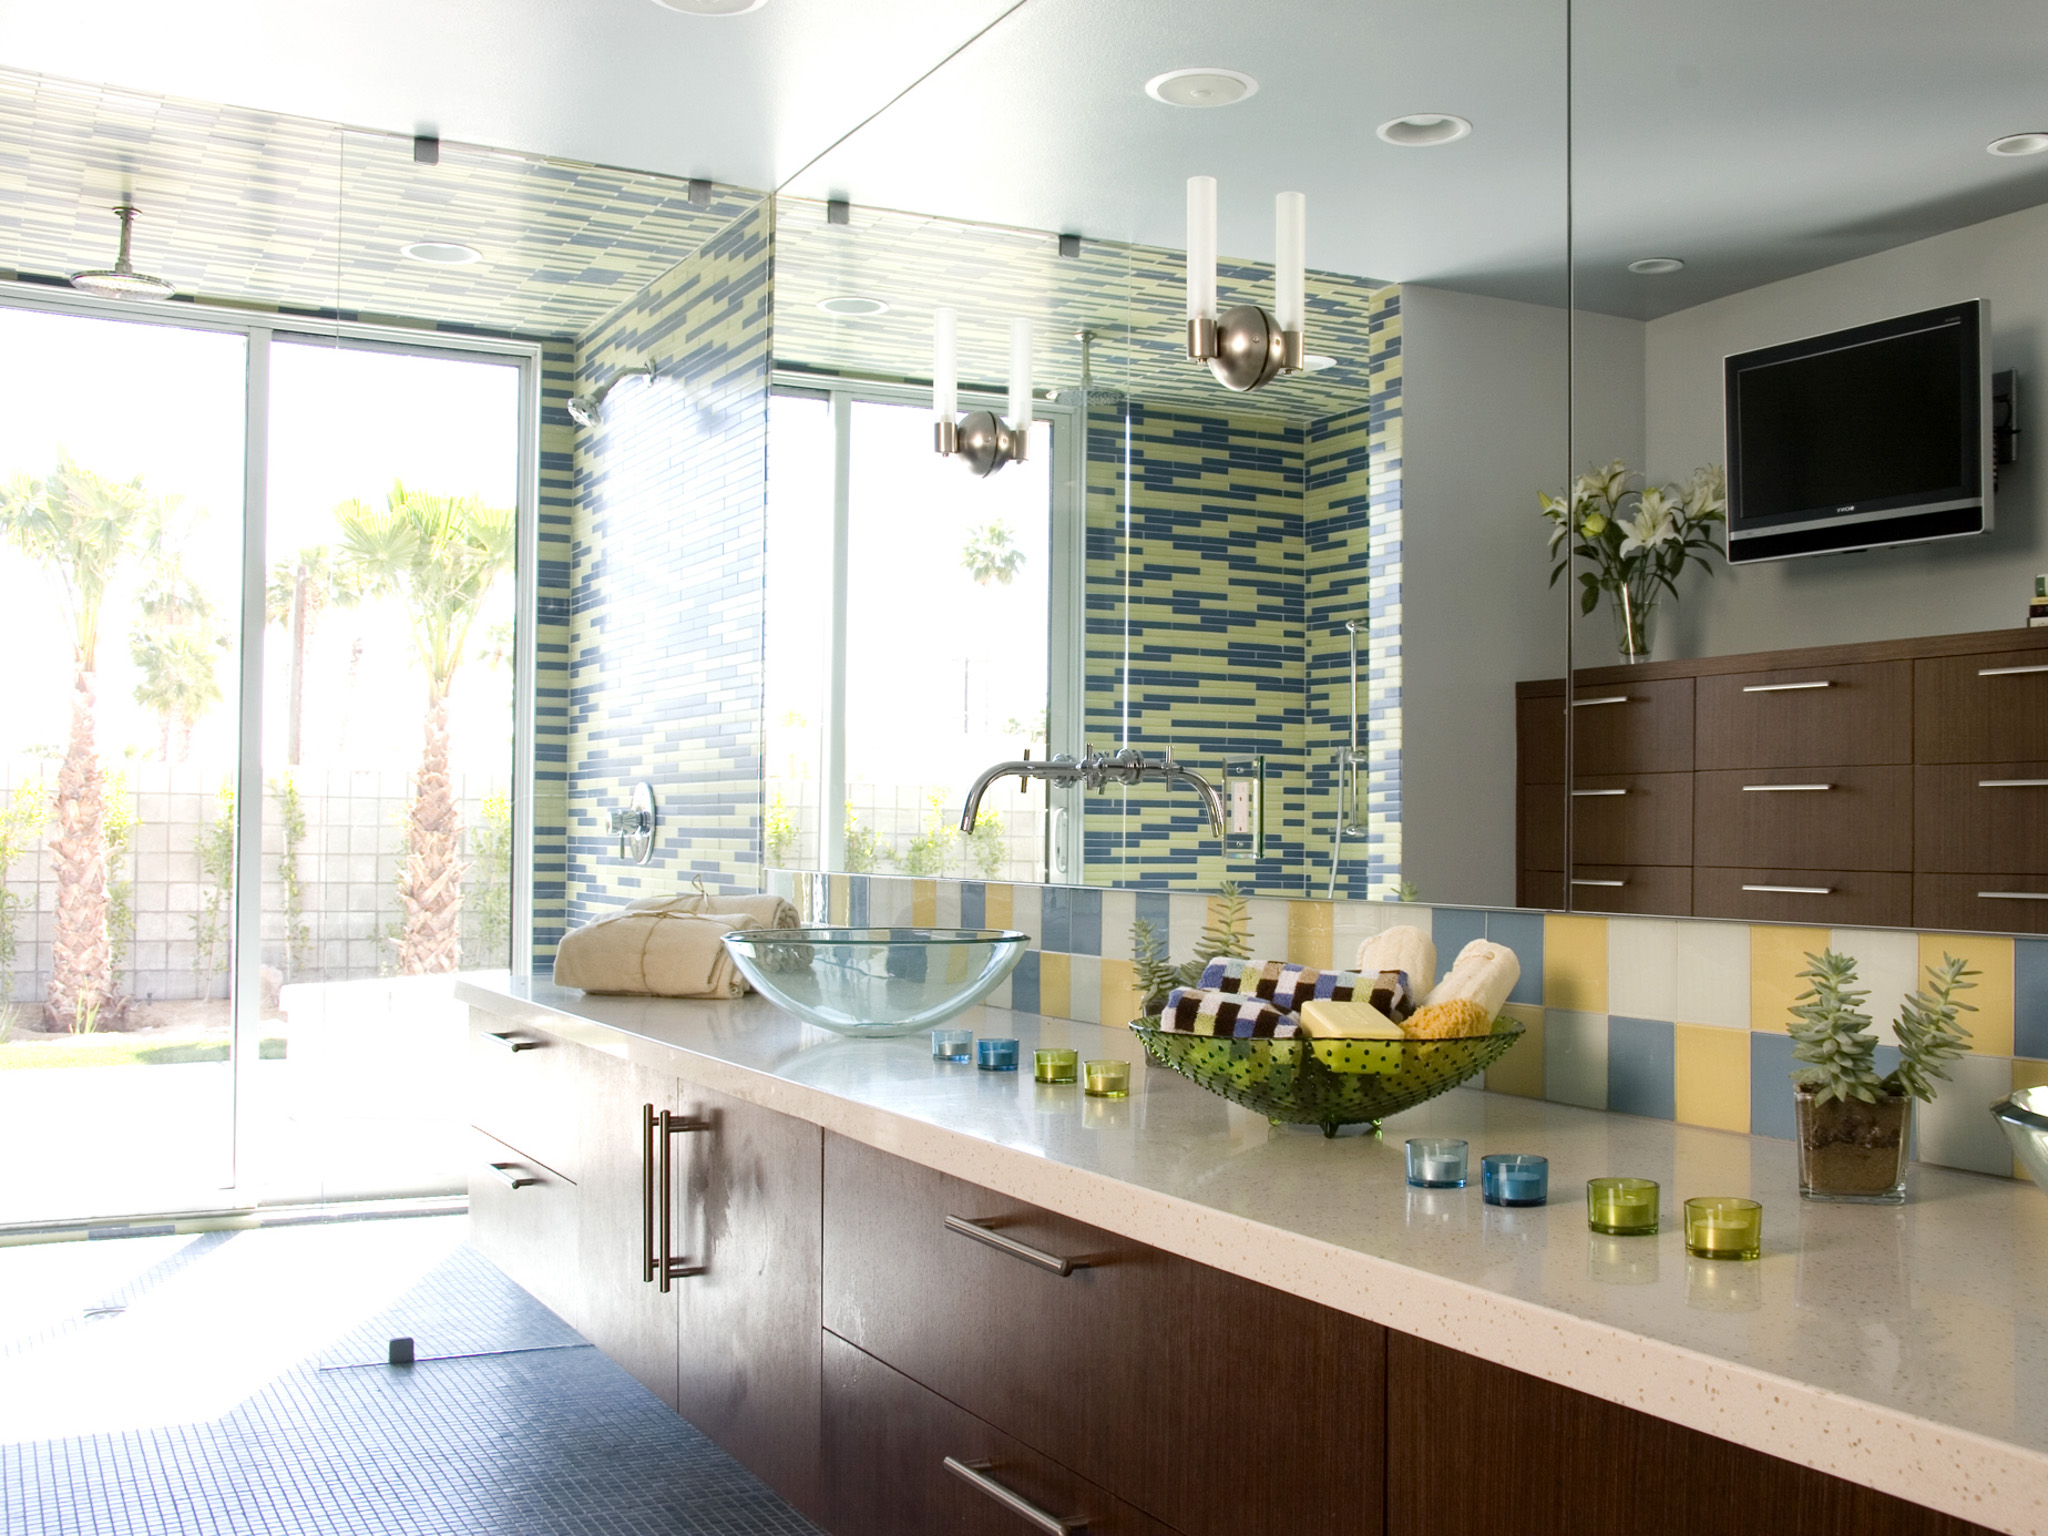 Beautiful Small Corner Mirror Bathroom Cabinet Small Large Bathroom Wall Tiles Uk Round Bathroom Vanities Toronto Canada Bathroom Mirrors Frameless Old Master Bath Tile Design Ideas SoftBath And Shower Enclosures Corian Countertop Prices For Bathrooms | HGTV